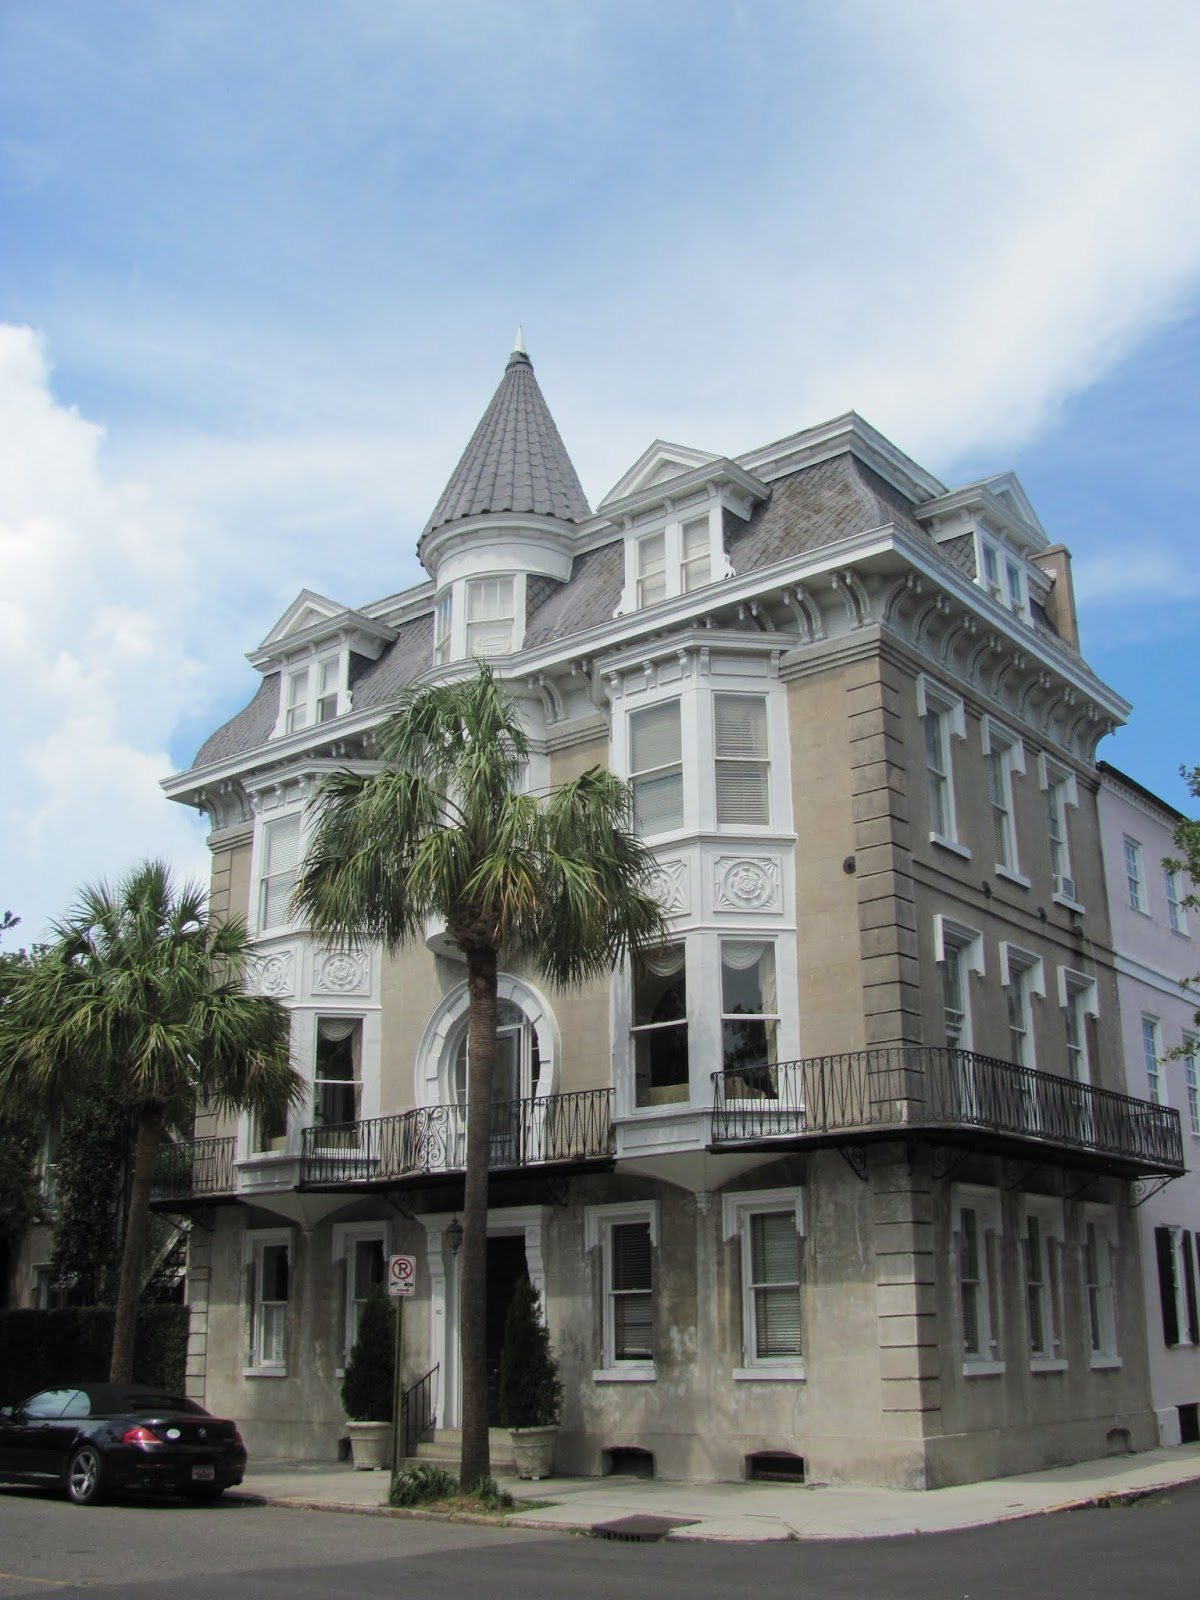 Graystone building on the corner in Charleston, SC